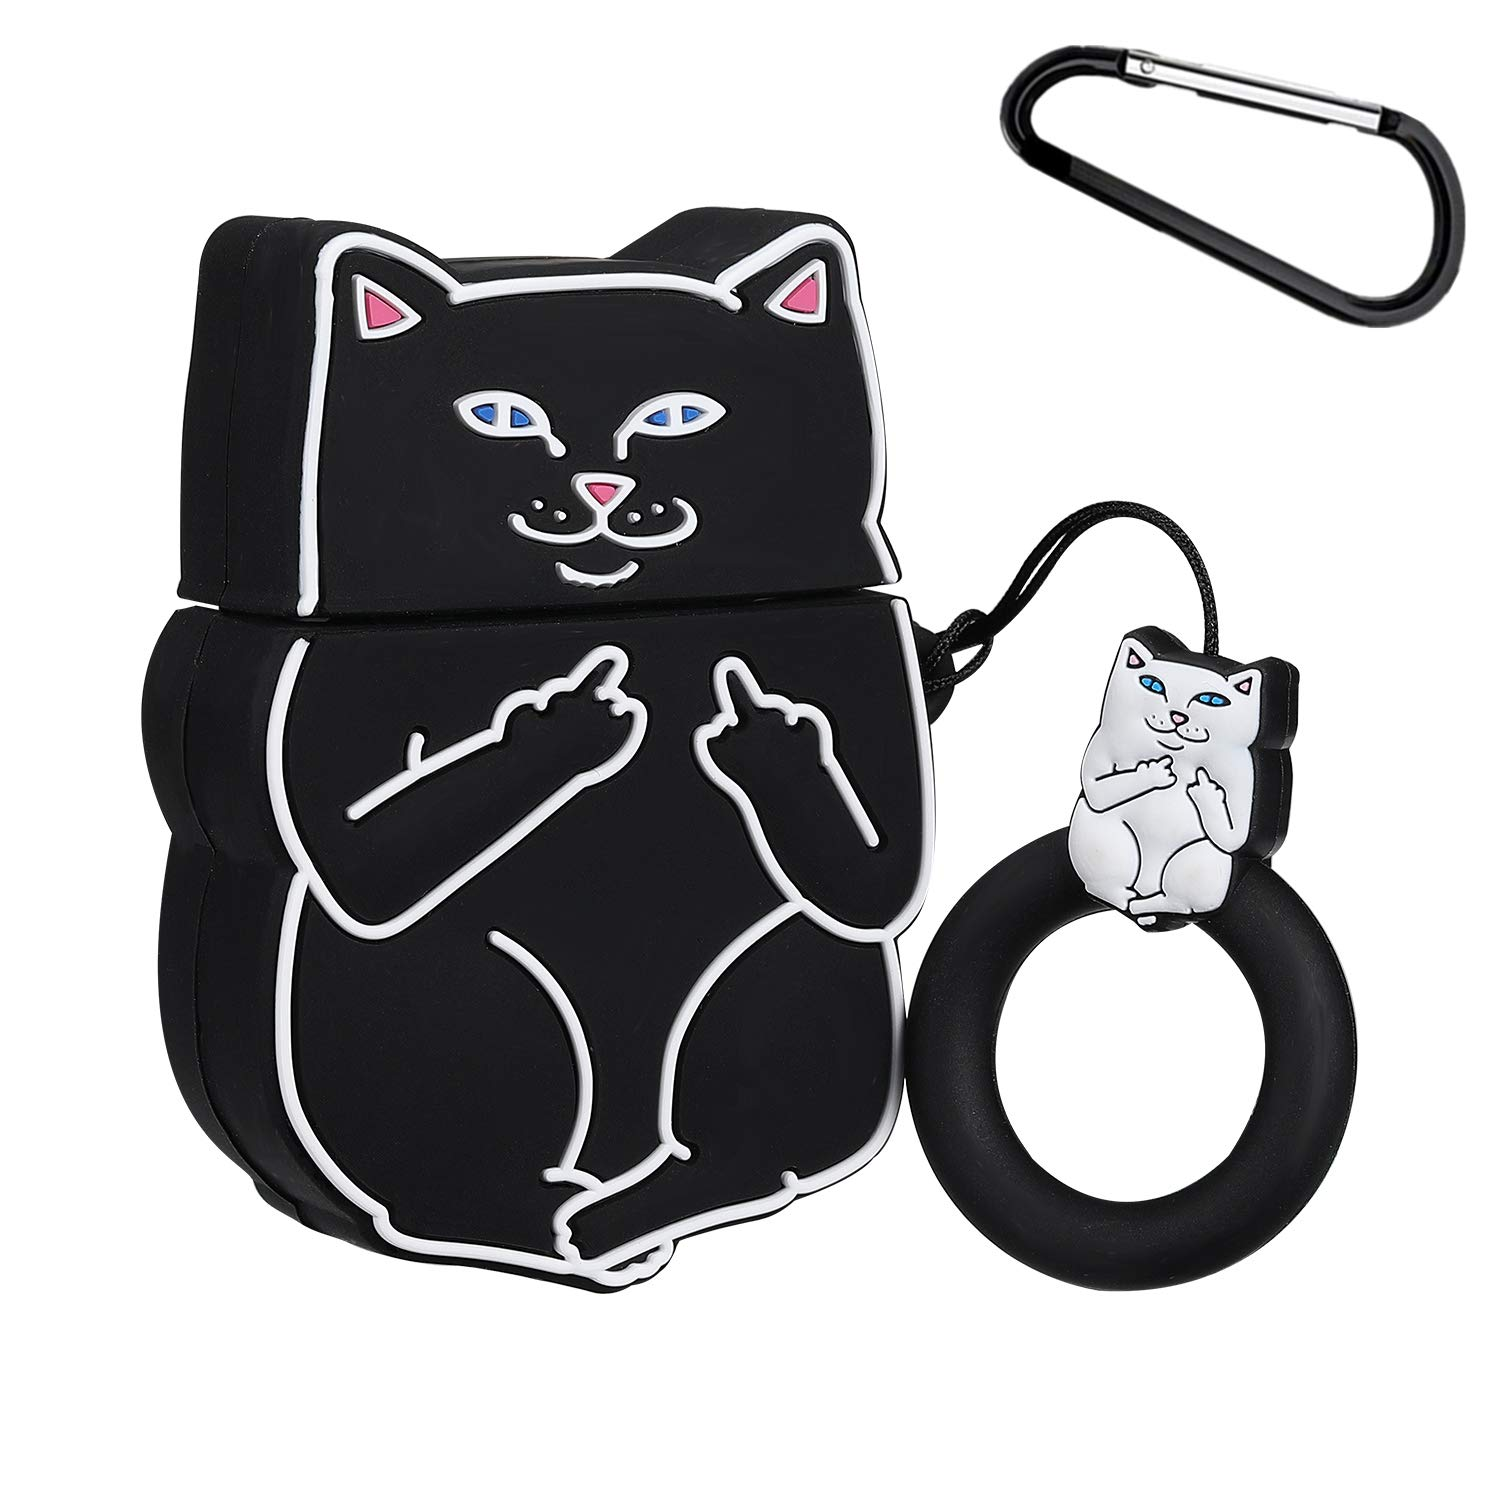 Gift-Hero Compatible with Airpods 1&2 Soft Silicone Cute Case,Cartoon 3D Fun Animal Funny Cool Kawaii Designer Kits Character Skin Fashion Cover for Girls Boys Kids Teens Air pods(Black Finger cat)